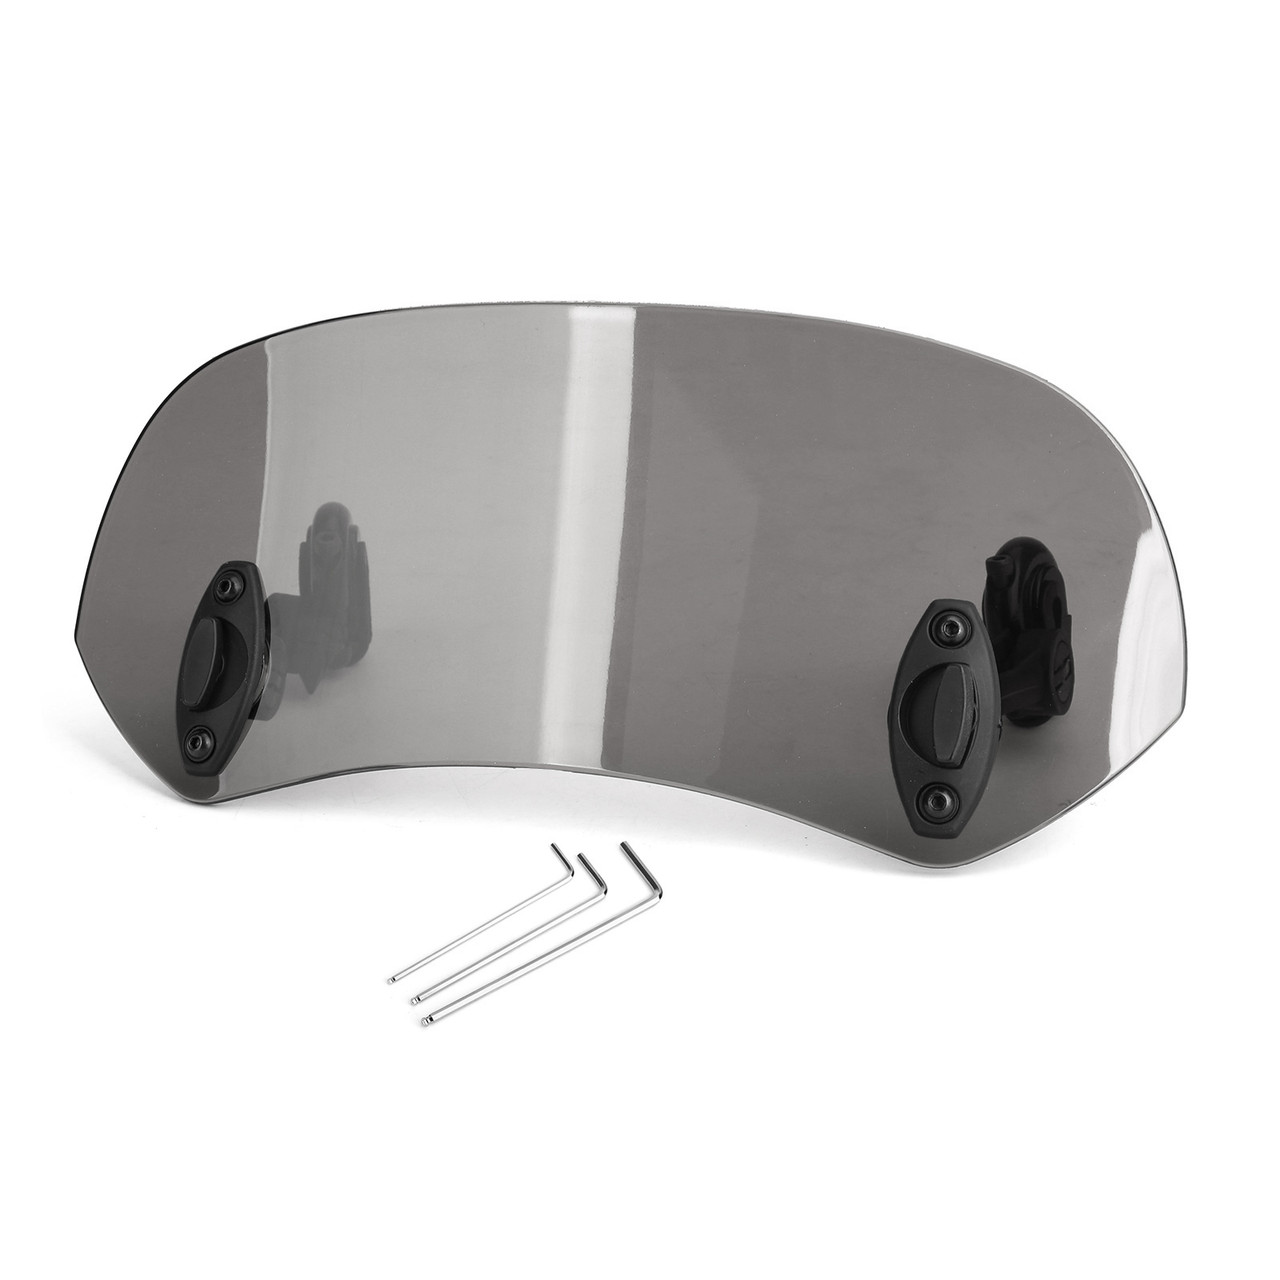 ABS Plastic Windshield Windscreen Universal Fit For Most of Motorcycle Gray